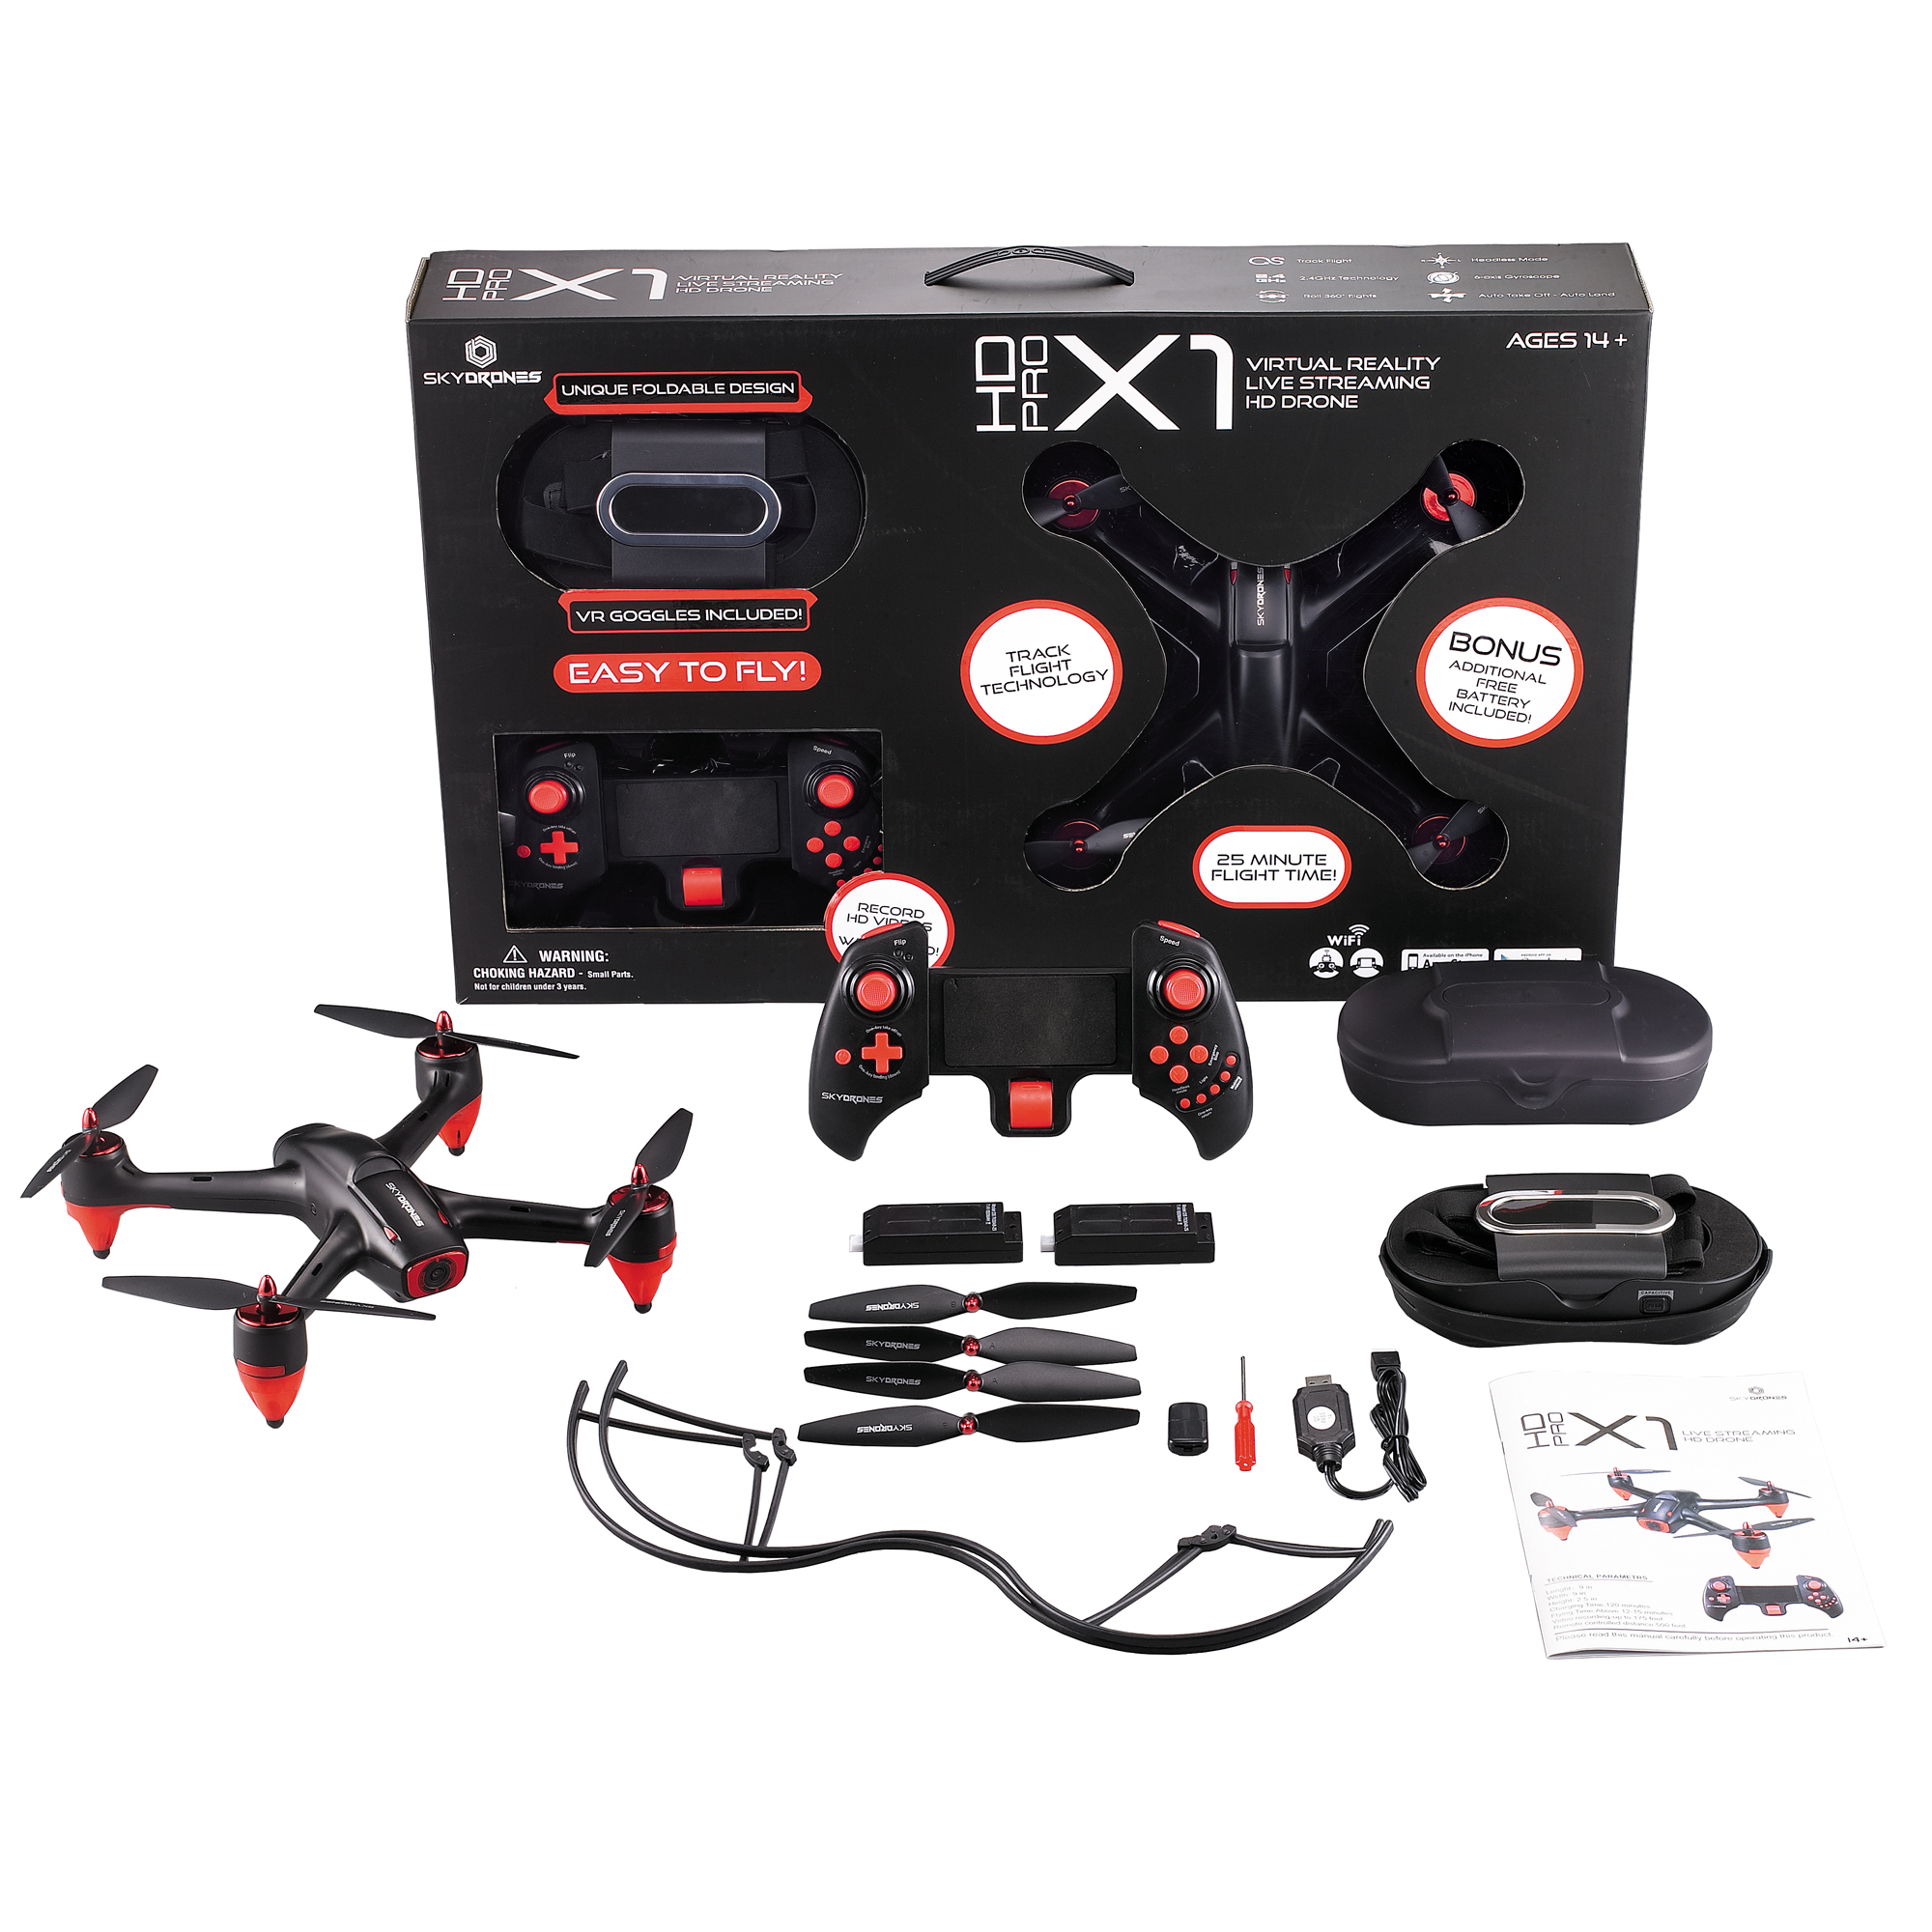 SkyDrones HD Pro X1 HD Virtual Reality Live Streaming Drone (Color May Vary) by Braha Industries Inc